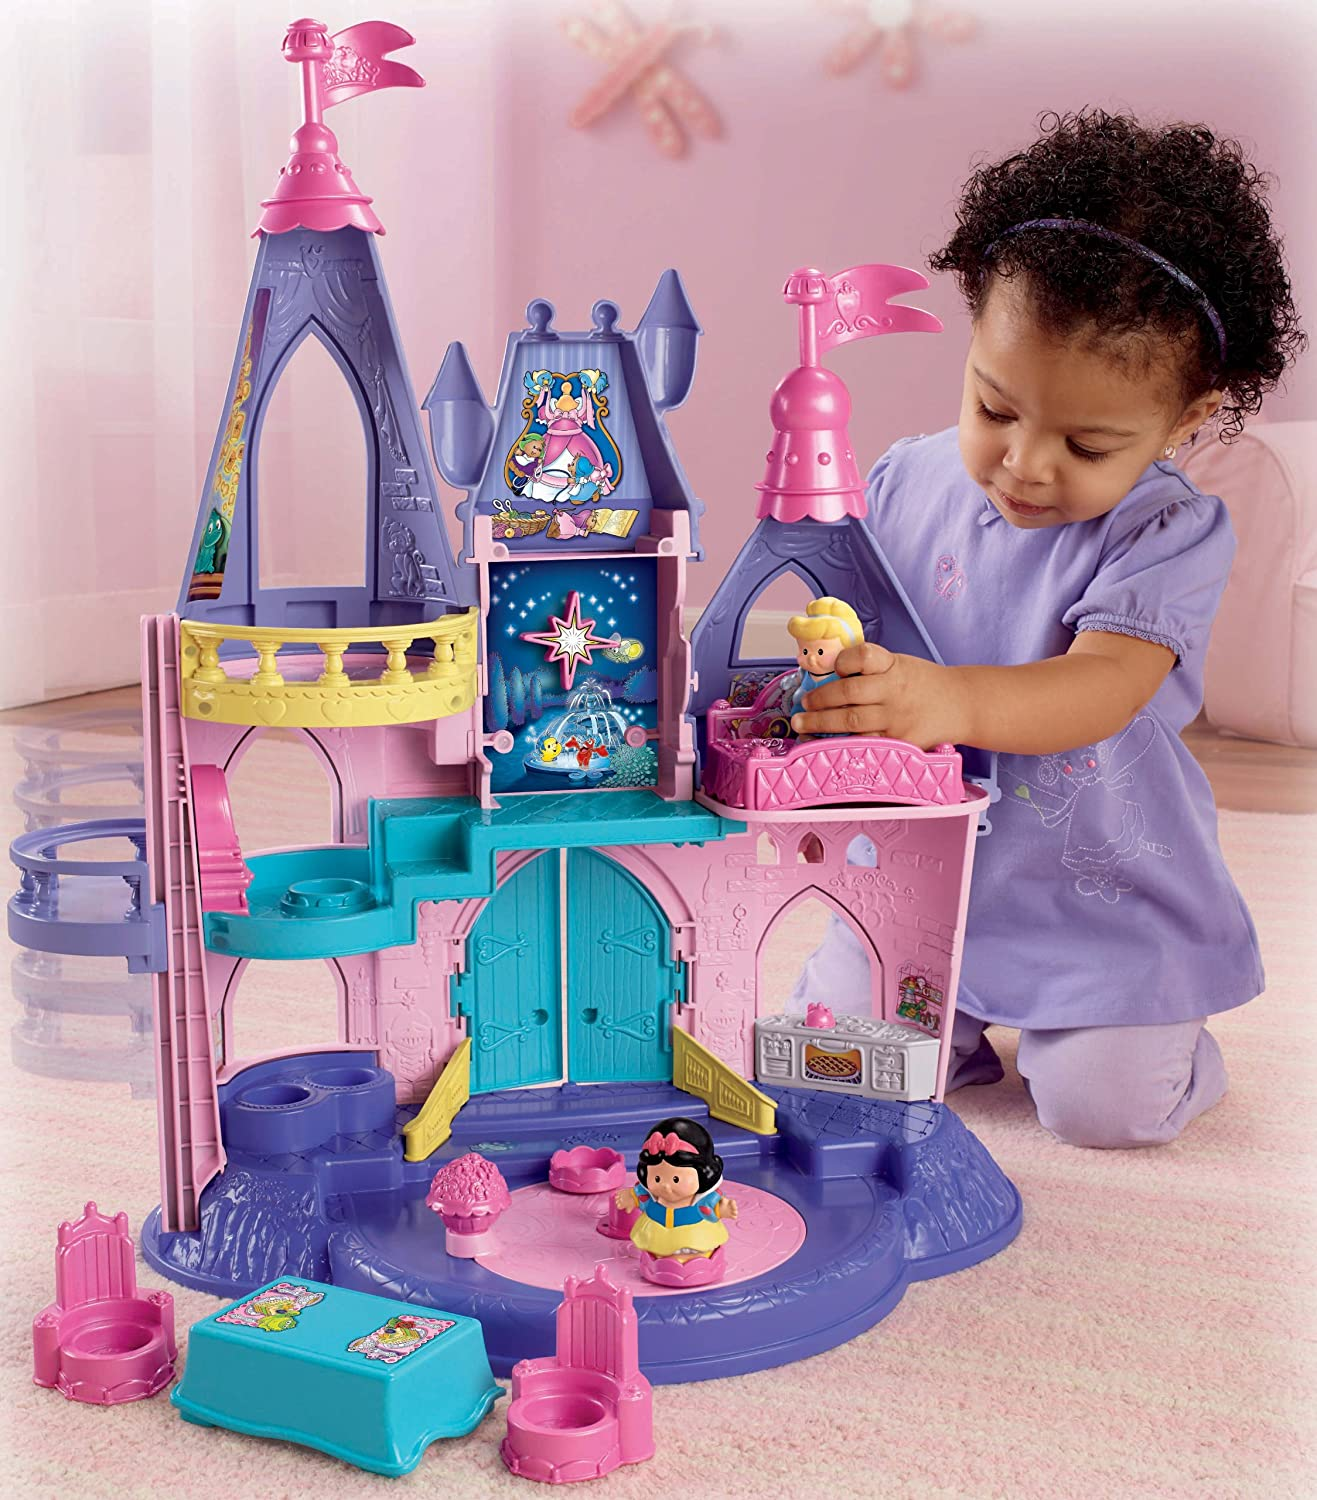 Princess Toys For 3 Year Olds : Princess toys for year old girls best